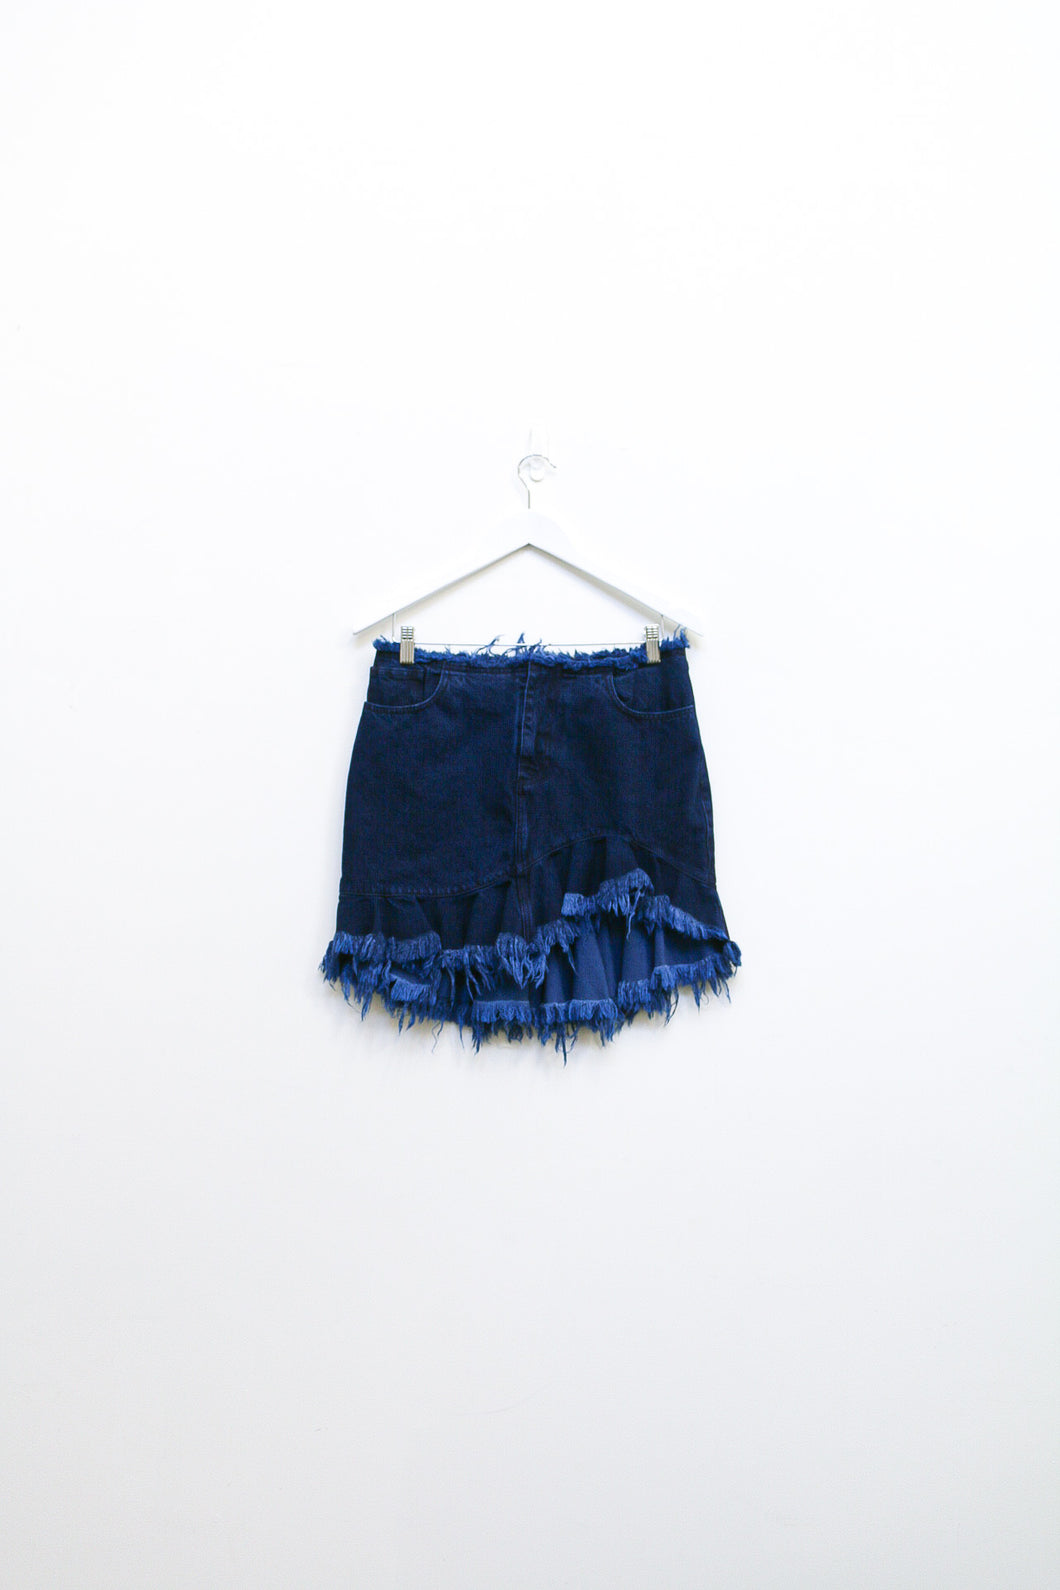 Marques' Almeida Denim Ruffled Mini